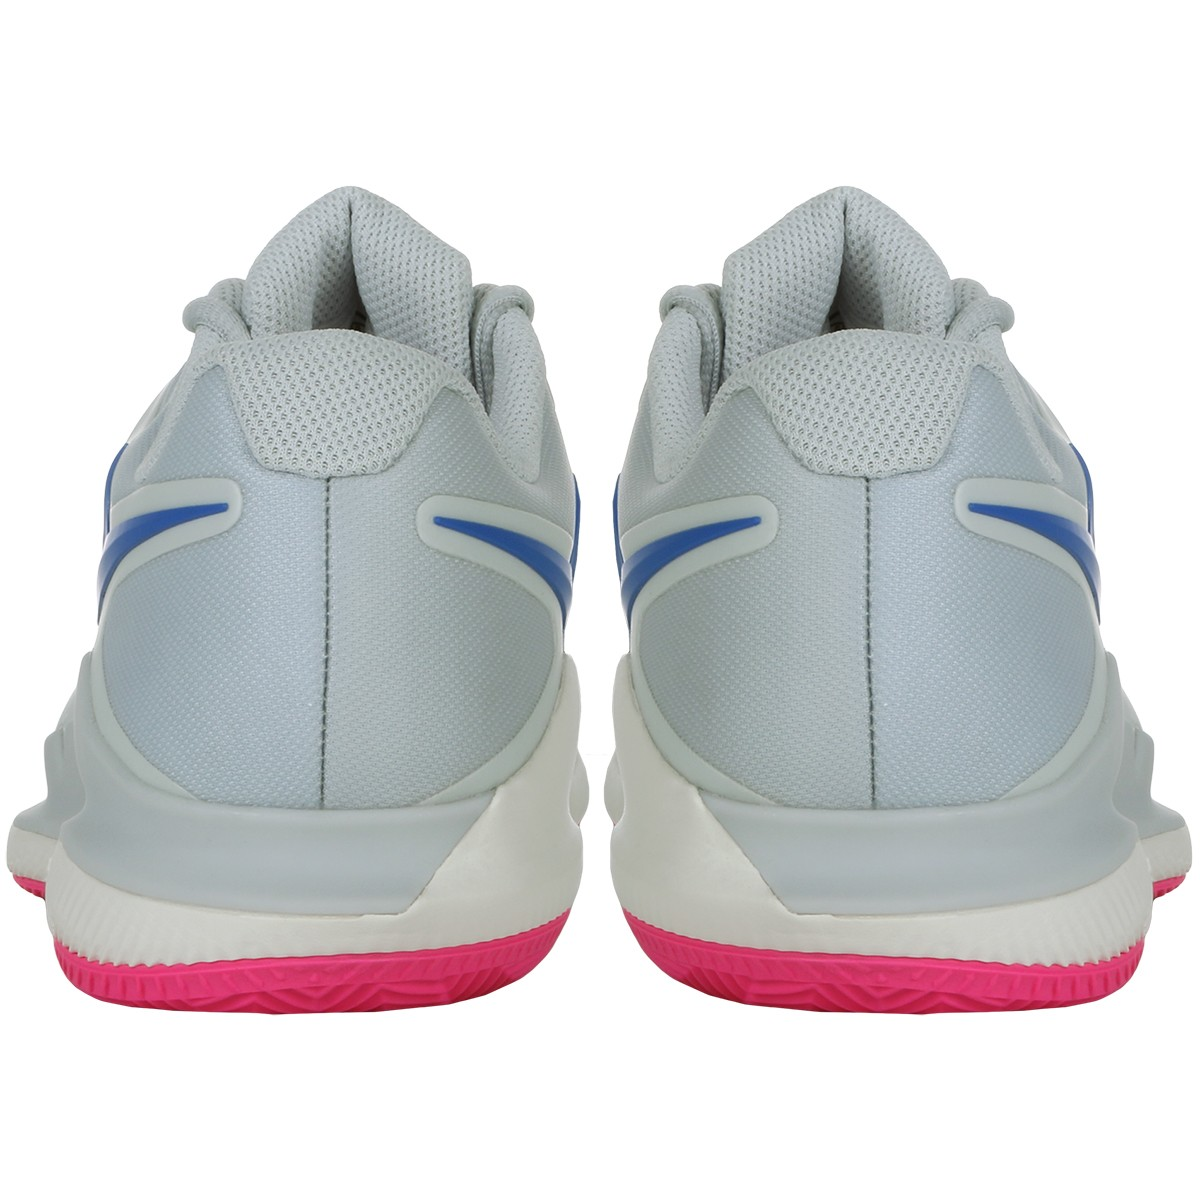 nike chaussure femme 10 ans